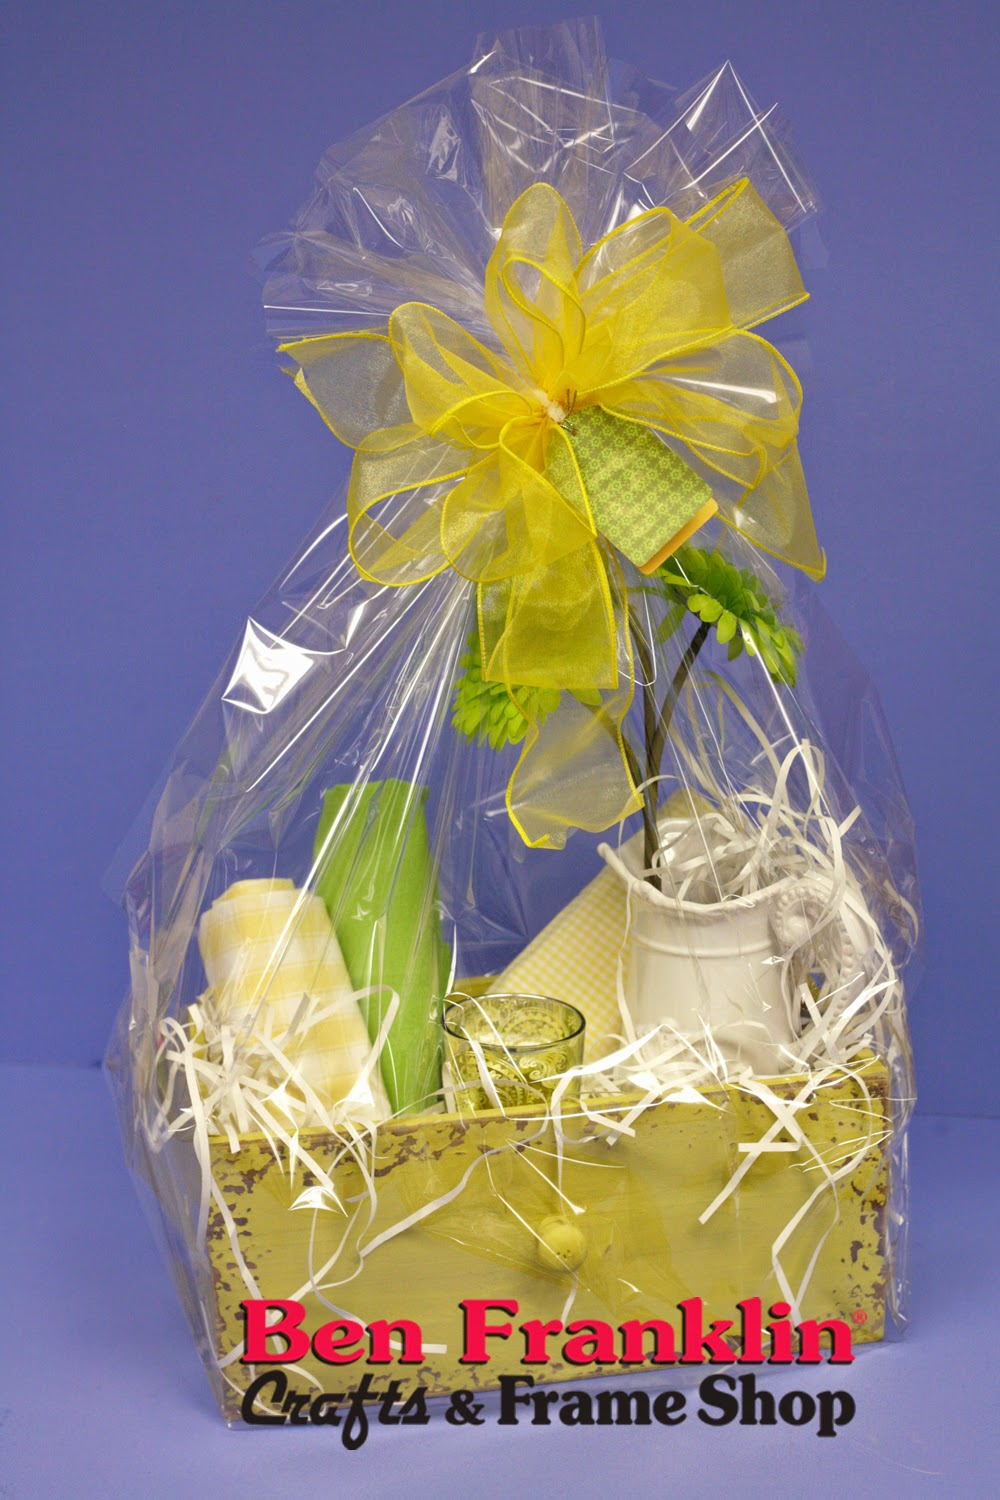 Ben franklin crafts and frame shop hostess gifts and easter gift we have pre made gift baskets available in the store and would also be happy to help you with your own gift basket theme and negle Images